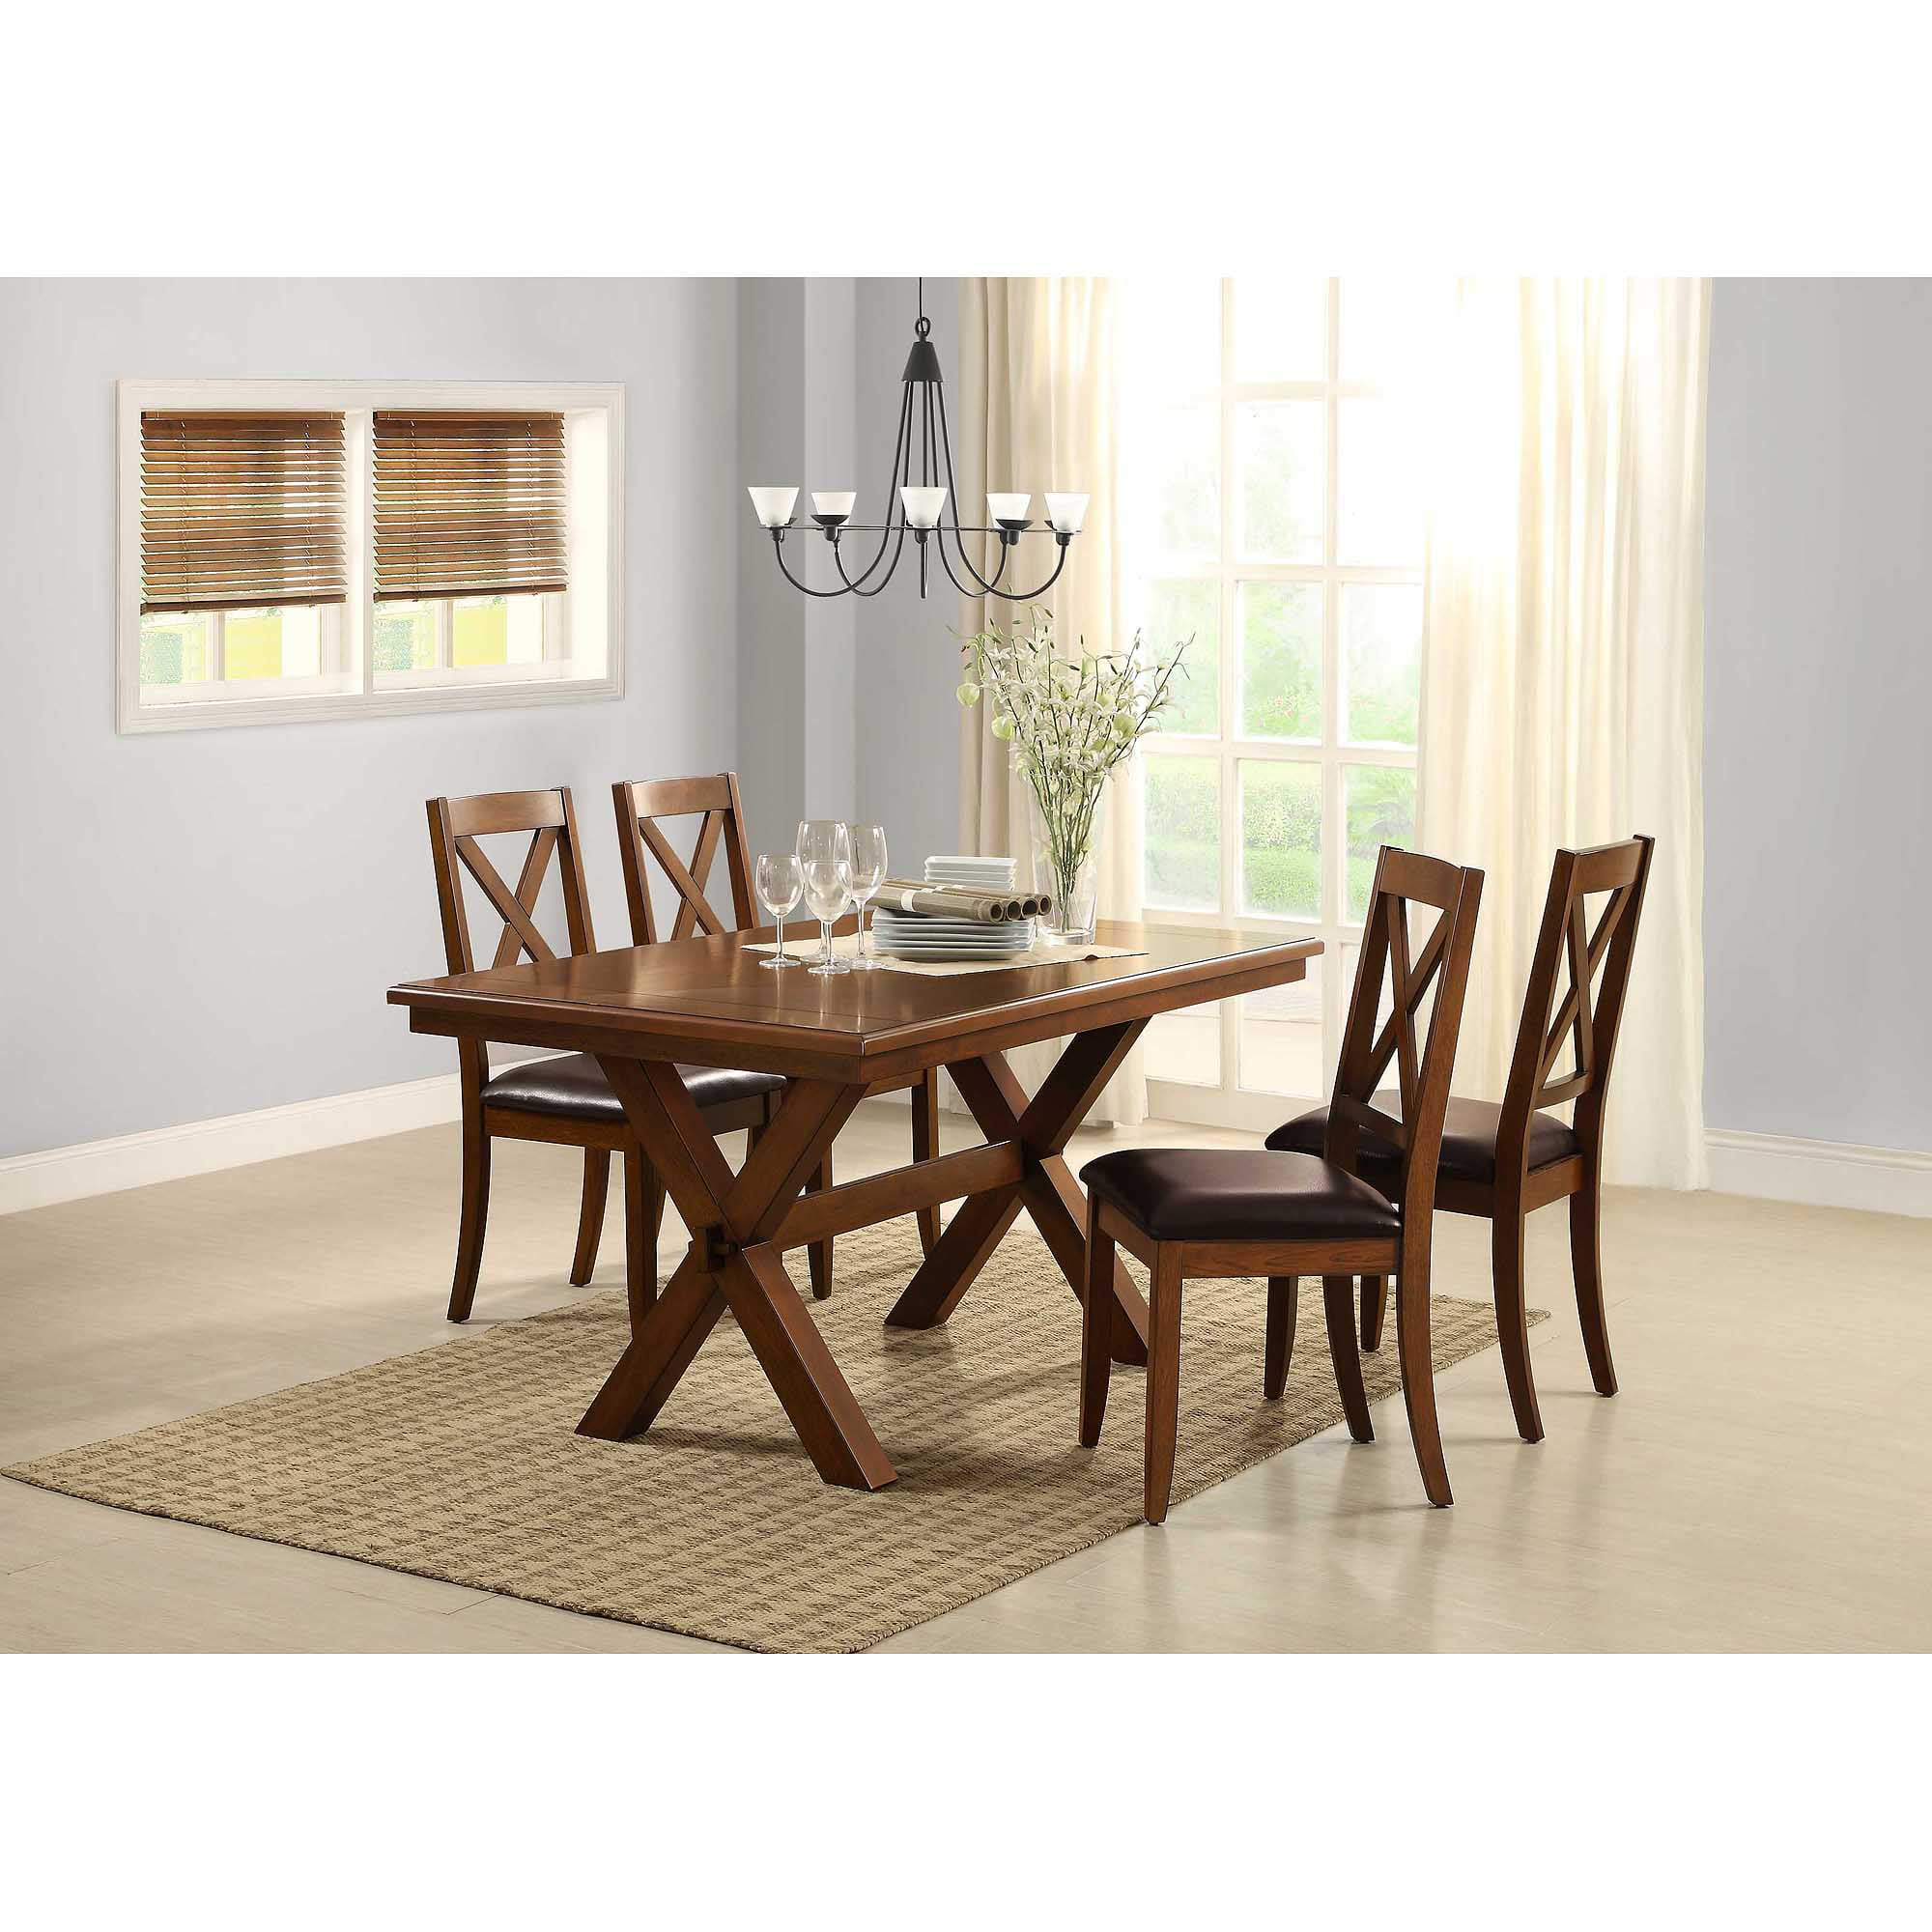 Bon Better Homes And Gardens Maddox Crossing Dining Table, Brown   Walmart.com